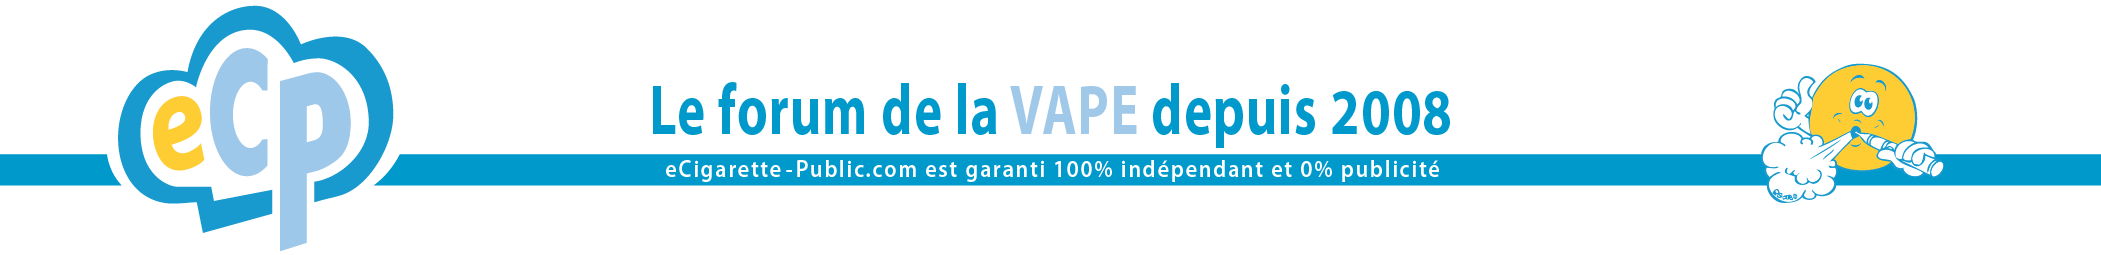 Ecigarette-public.com - Le forum de la vape